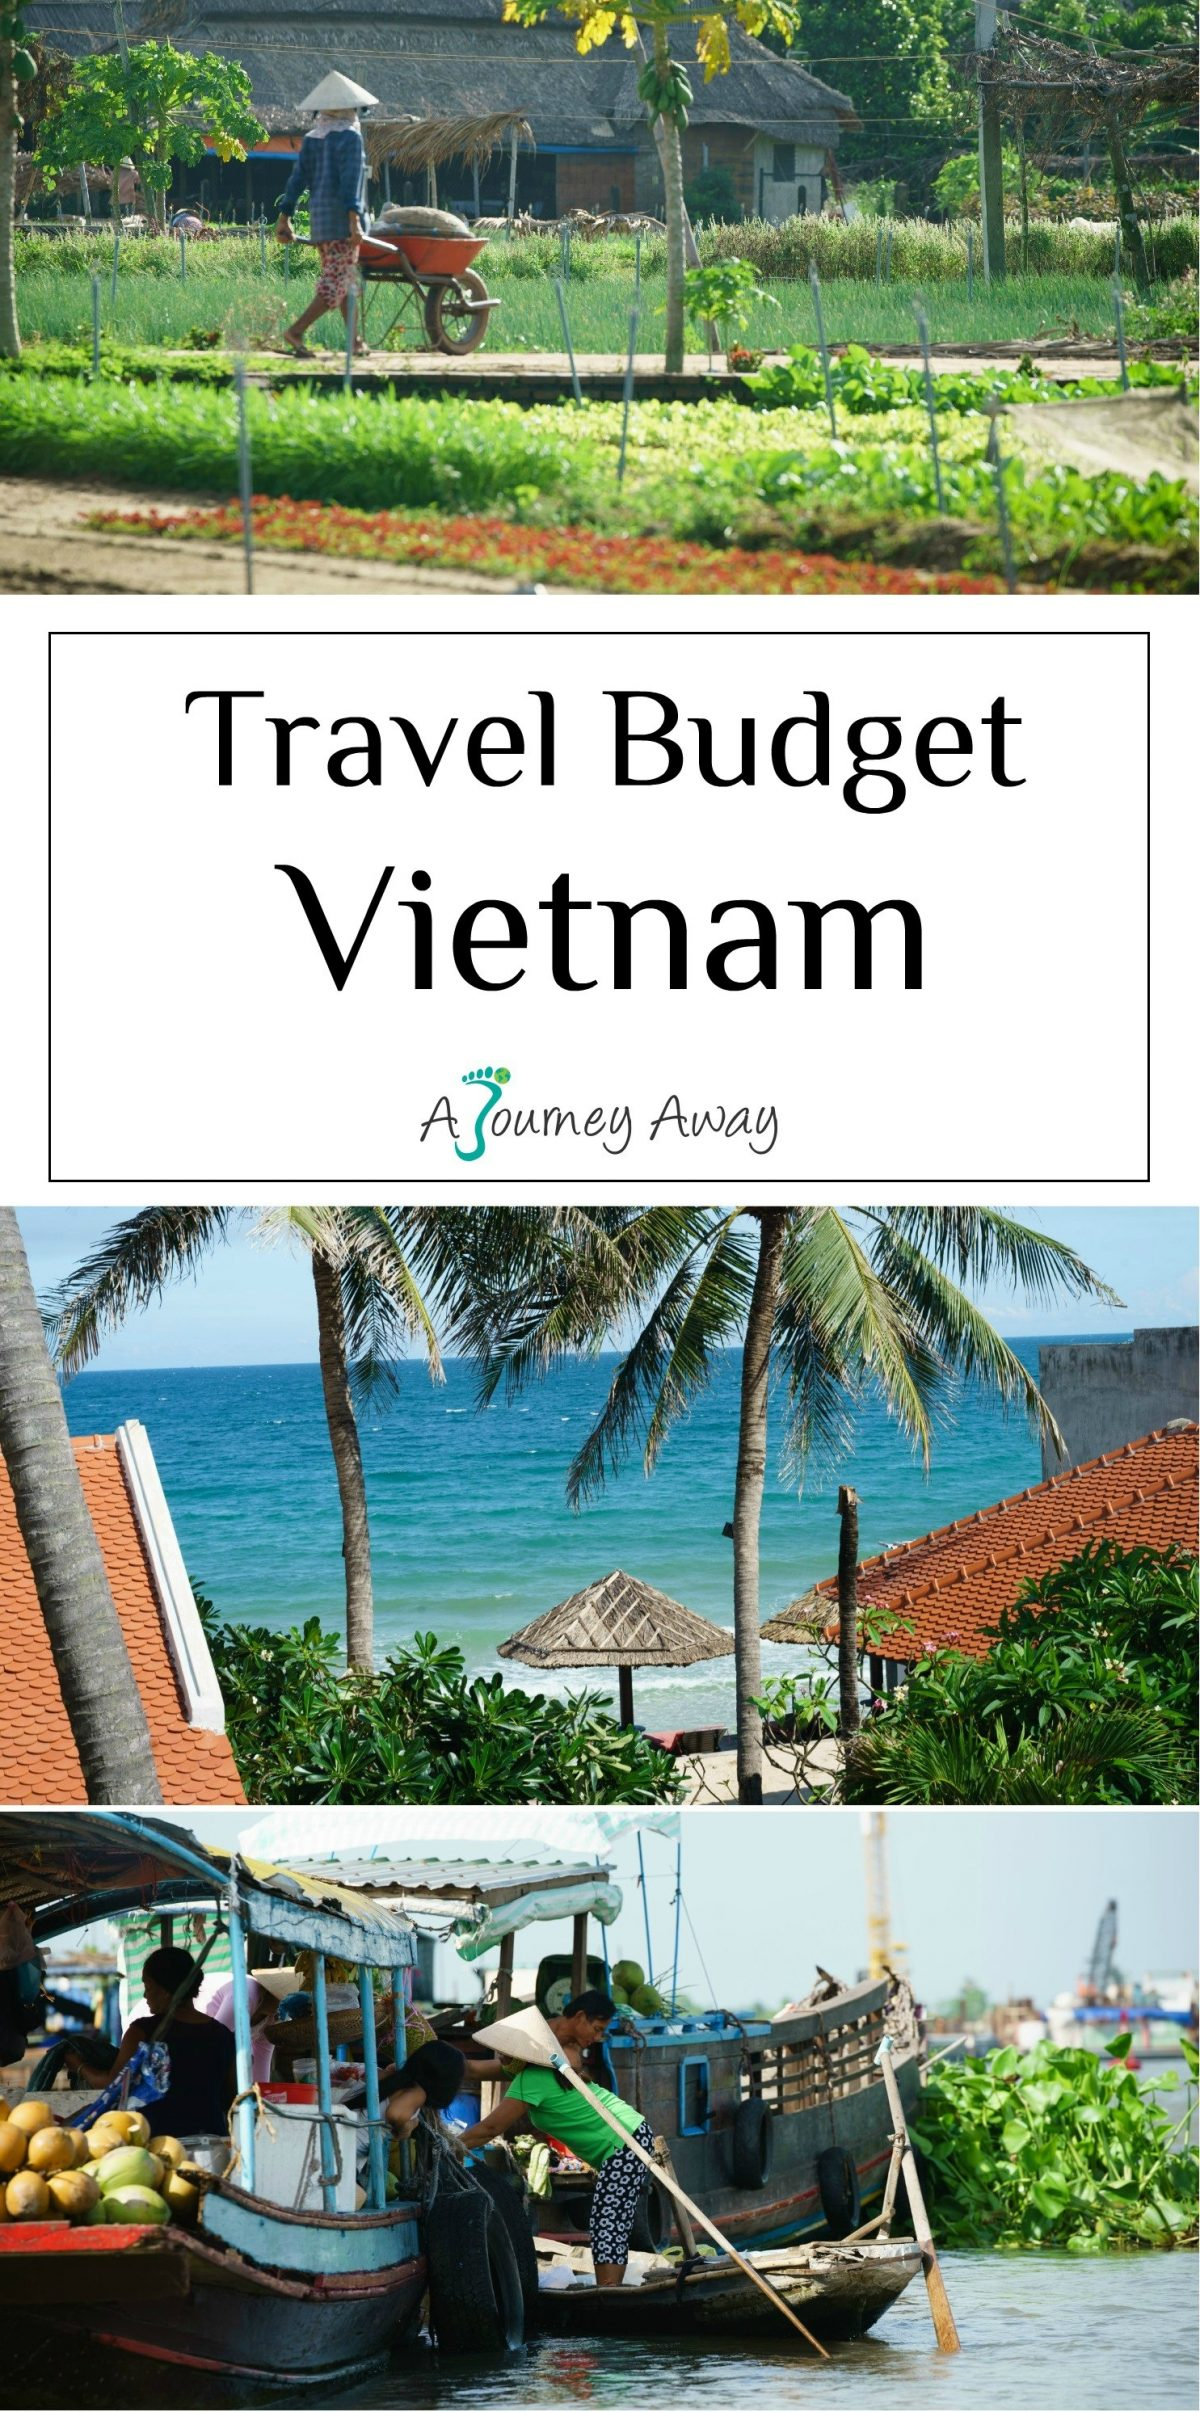 Travel Budget - 6 Weeks in Vietnam | A Journey Away travel blog